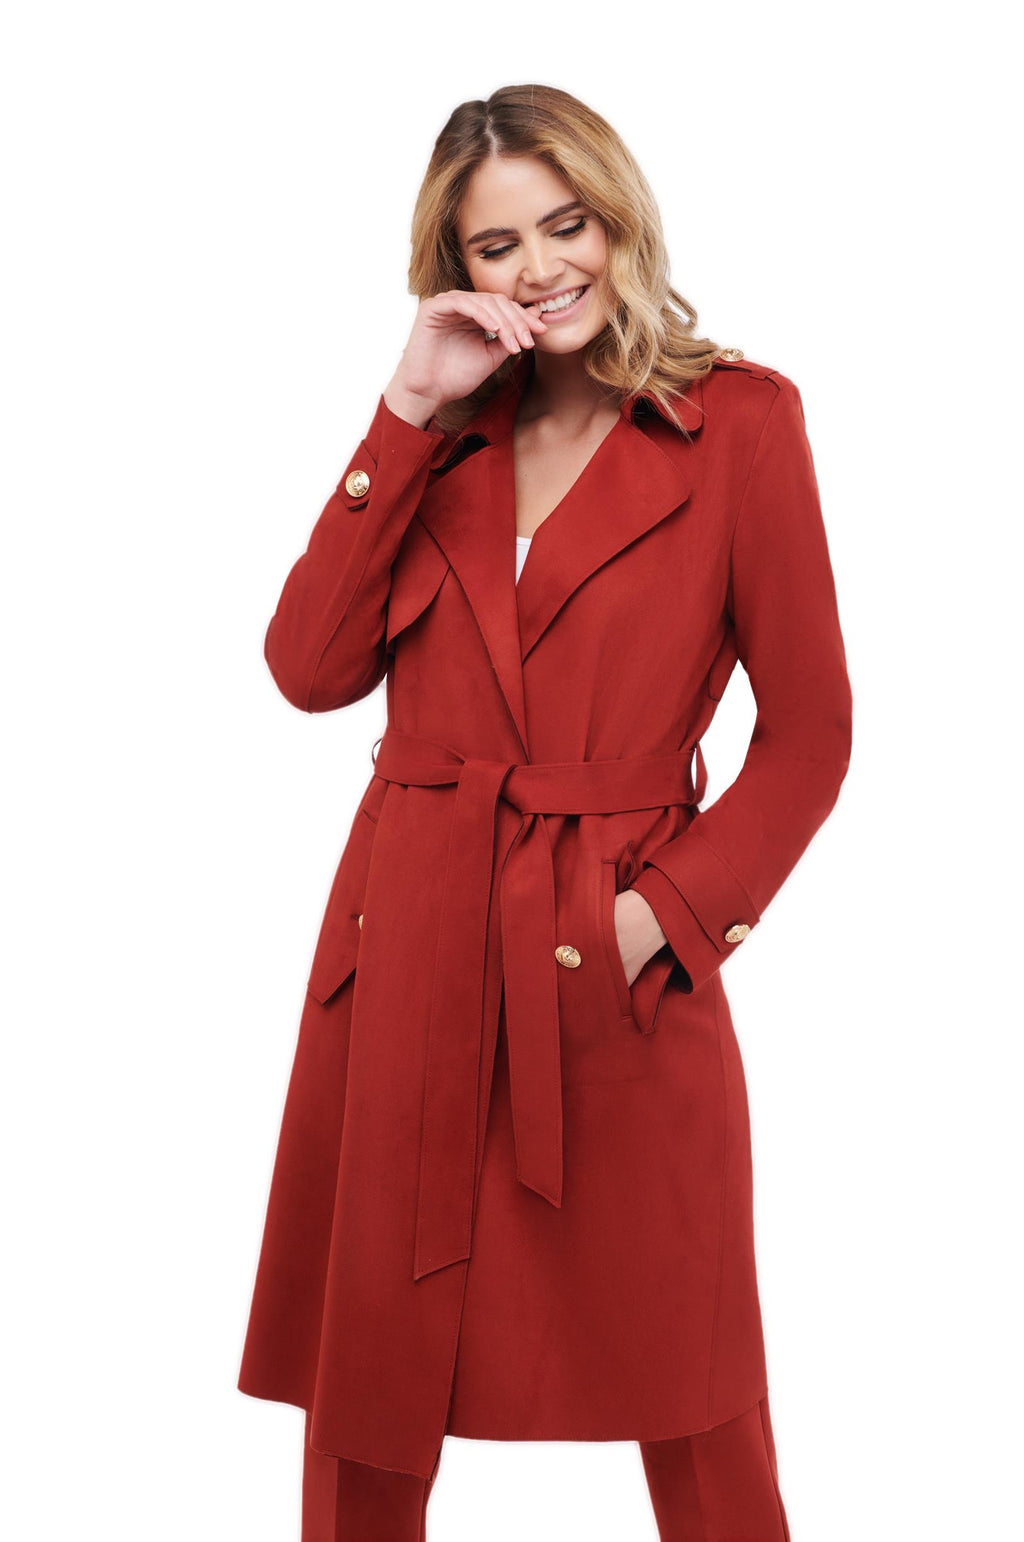 Sienna Suede Luxury Trench Coat - LURE Boutique